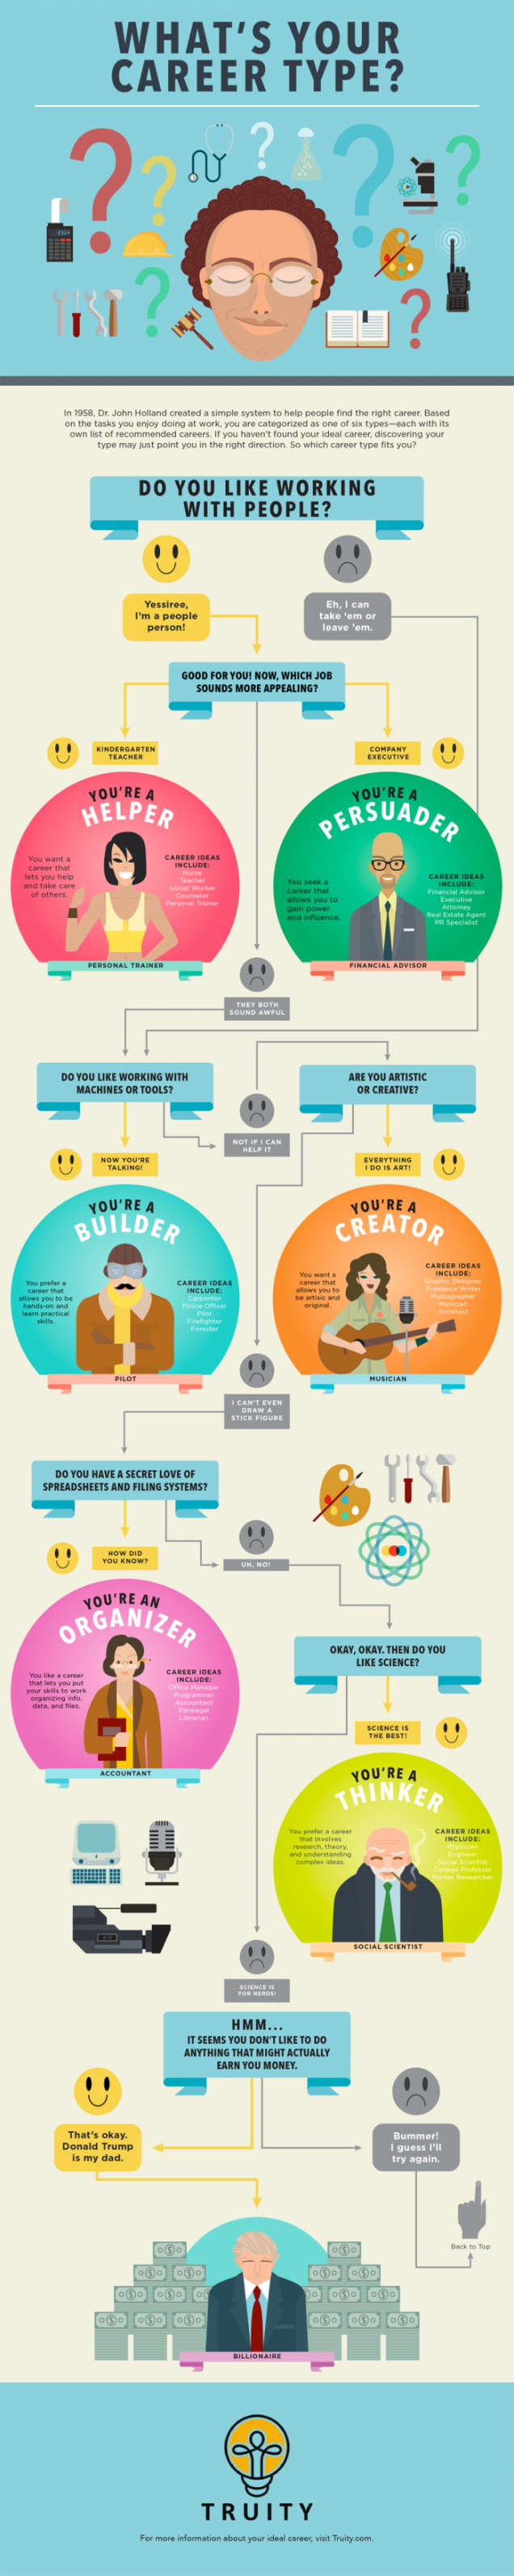 how to pick a career based on your personality the muse infographic courtesy of truity photo of colored pencils courtesy of shutterstock